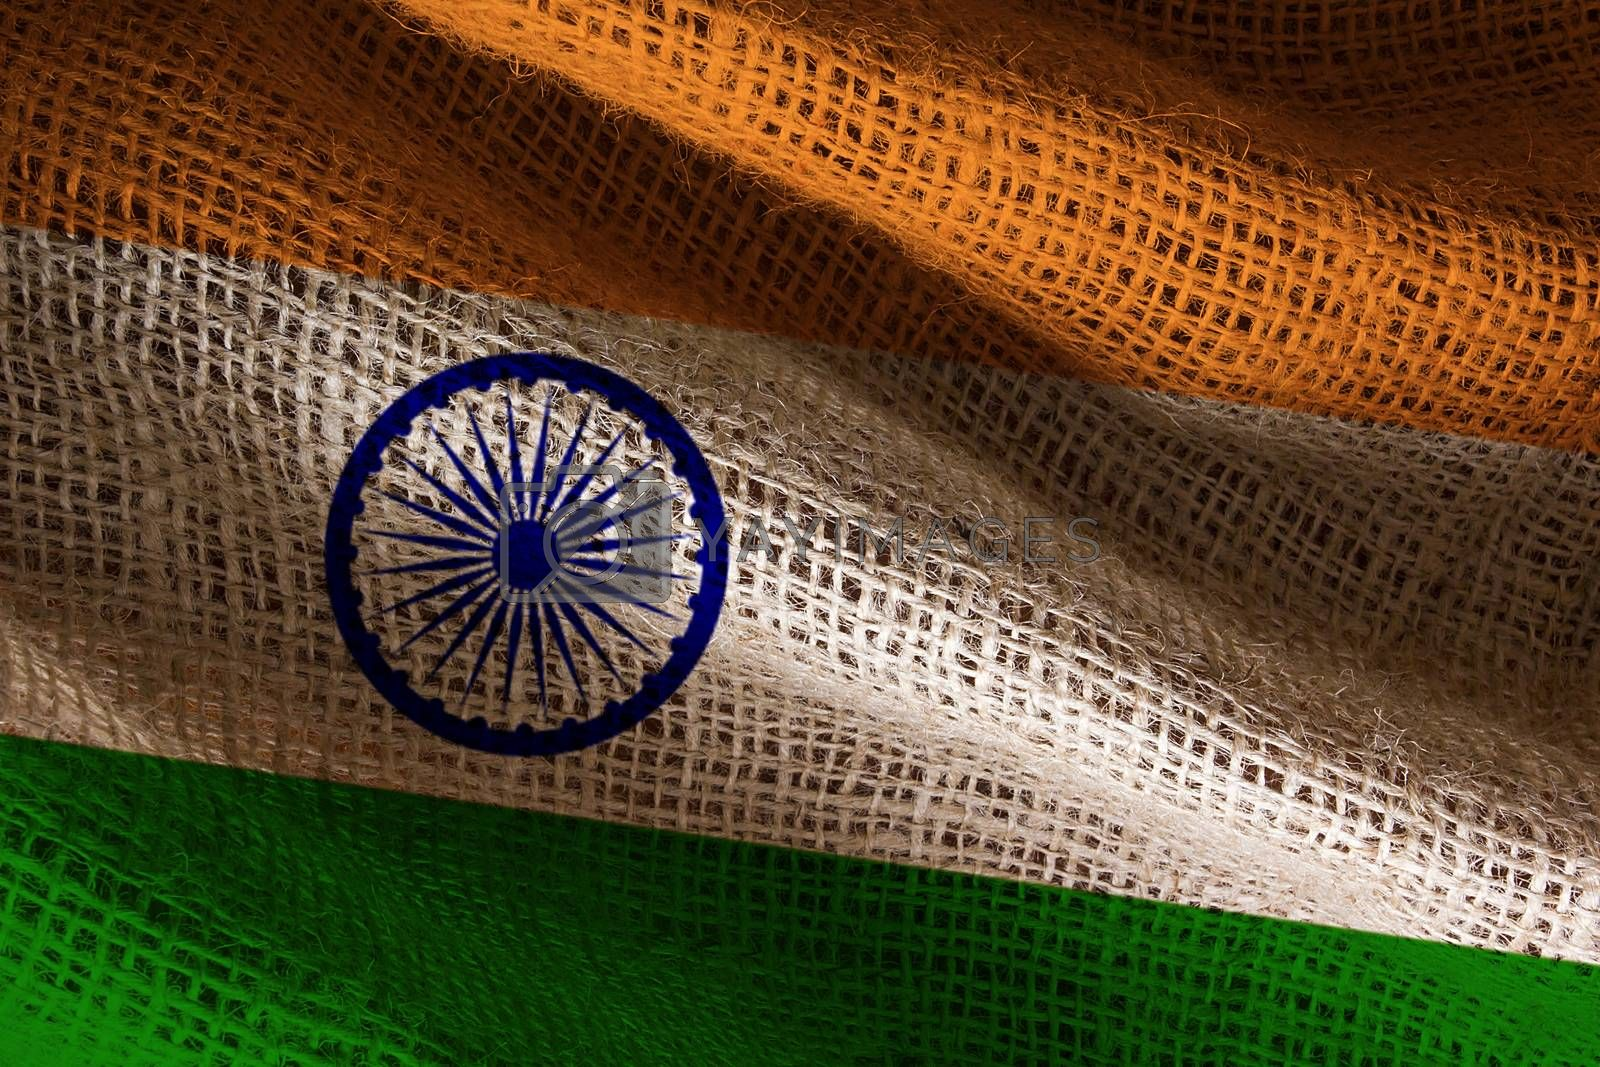 Close-up photograph of the flag of India